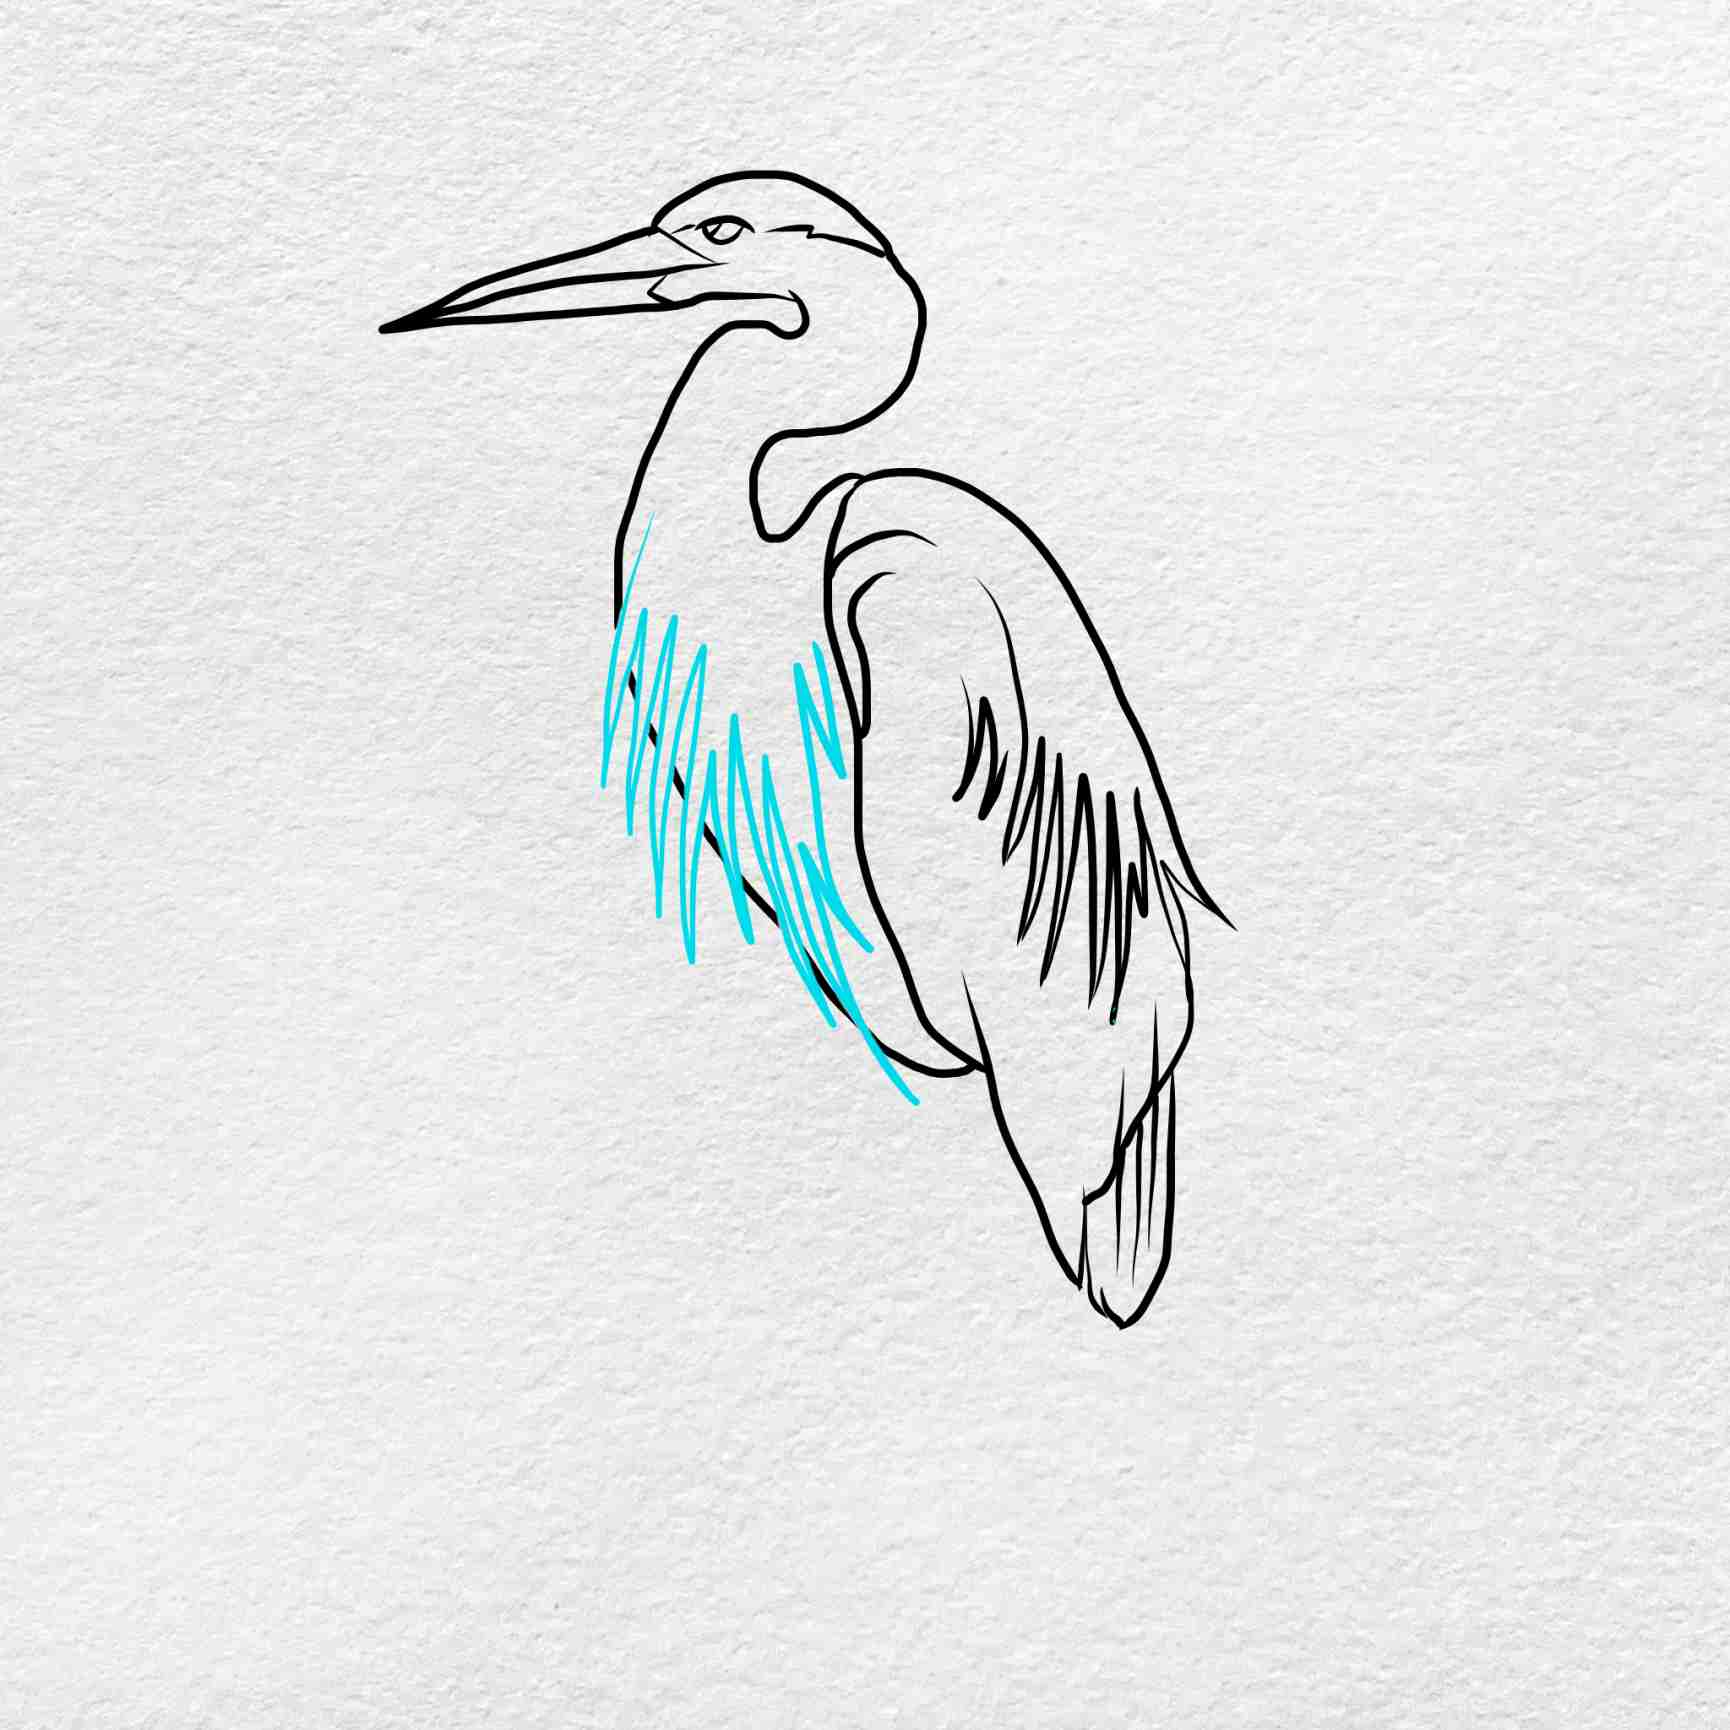 How To Draw A Heron: Step 4